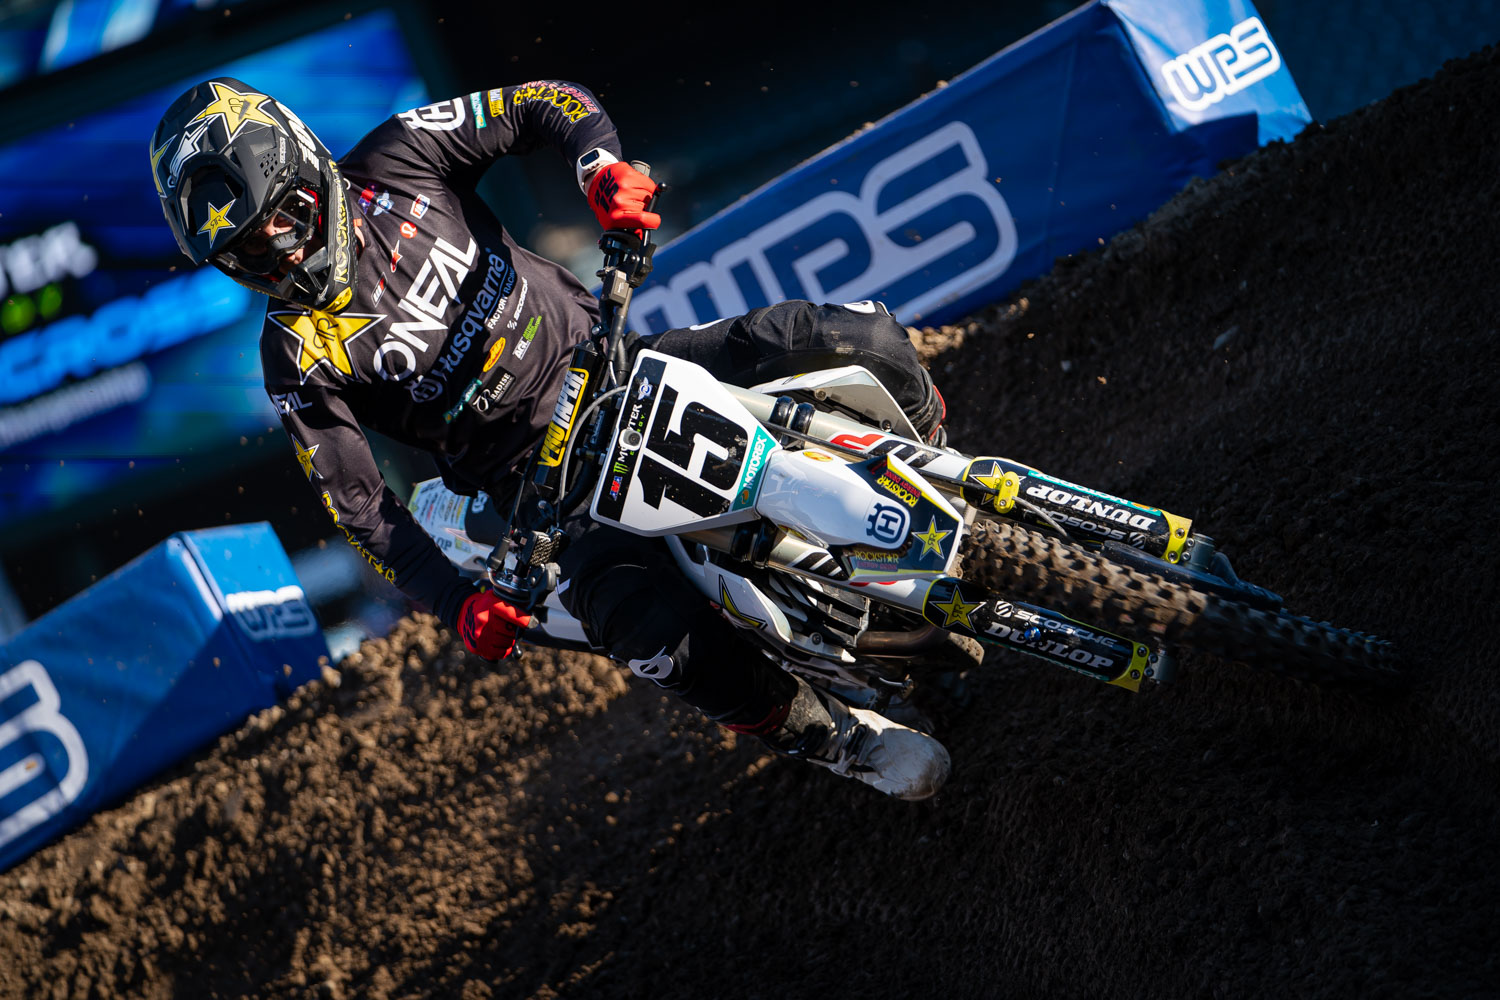 Dean Wilson Details His Recovery From Dislocated Hip Swapmoto Live